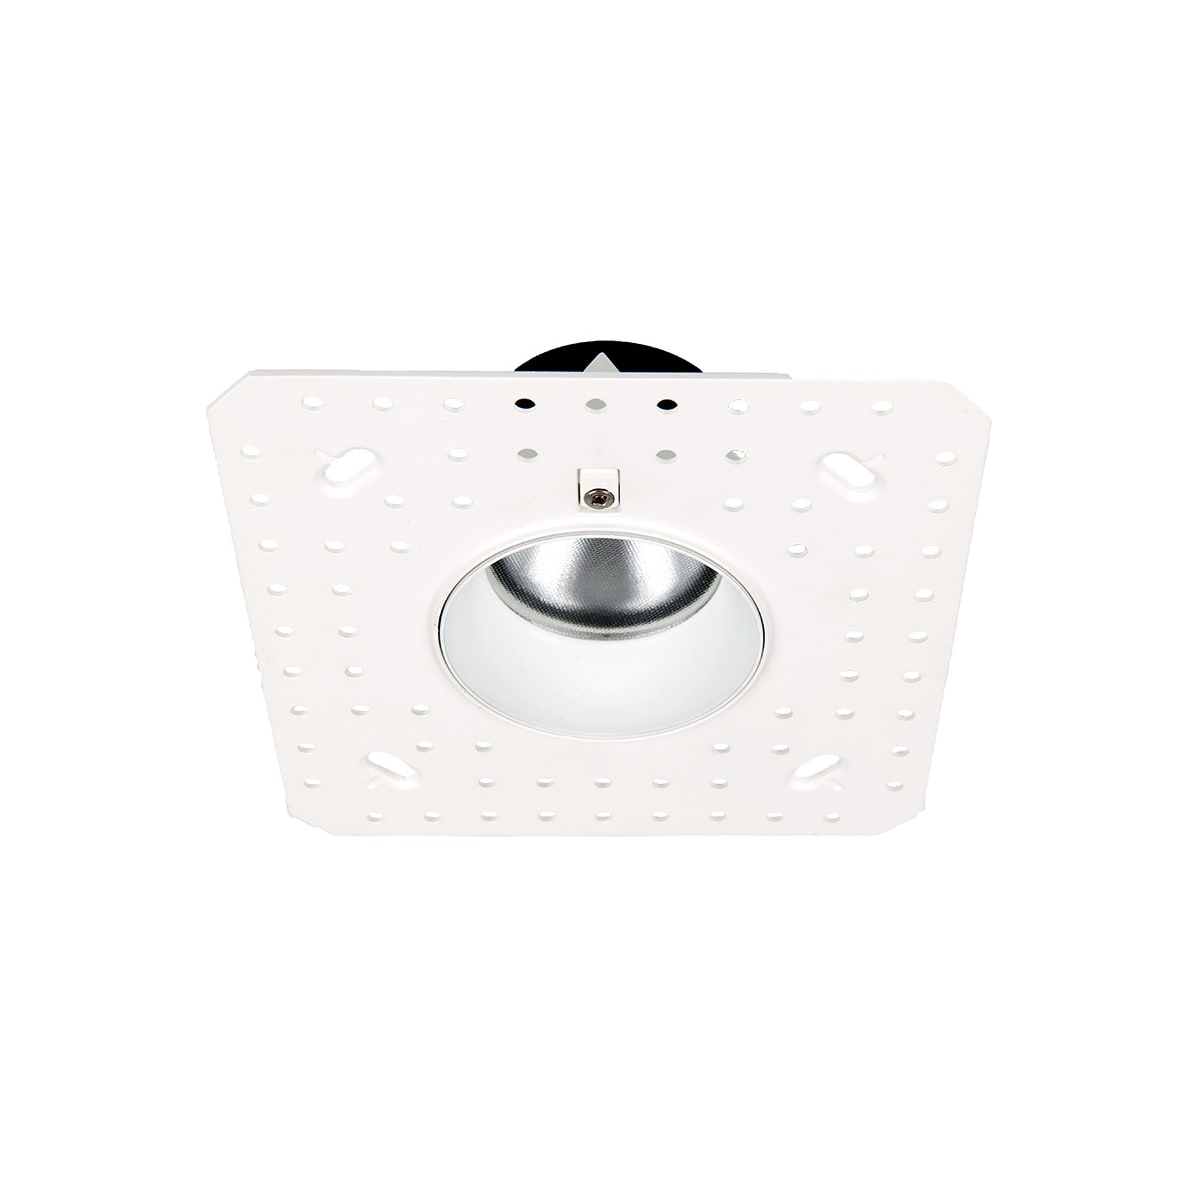 Wac Lighting R2ardl F830 Wt White 3000k 85cri Aether 2 Round Invisible Trim With Led Light Engine And 40 Flood Beam Spread Lightingdirect Com